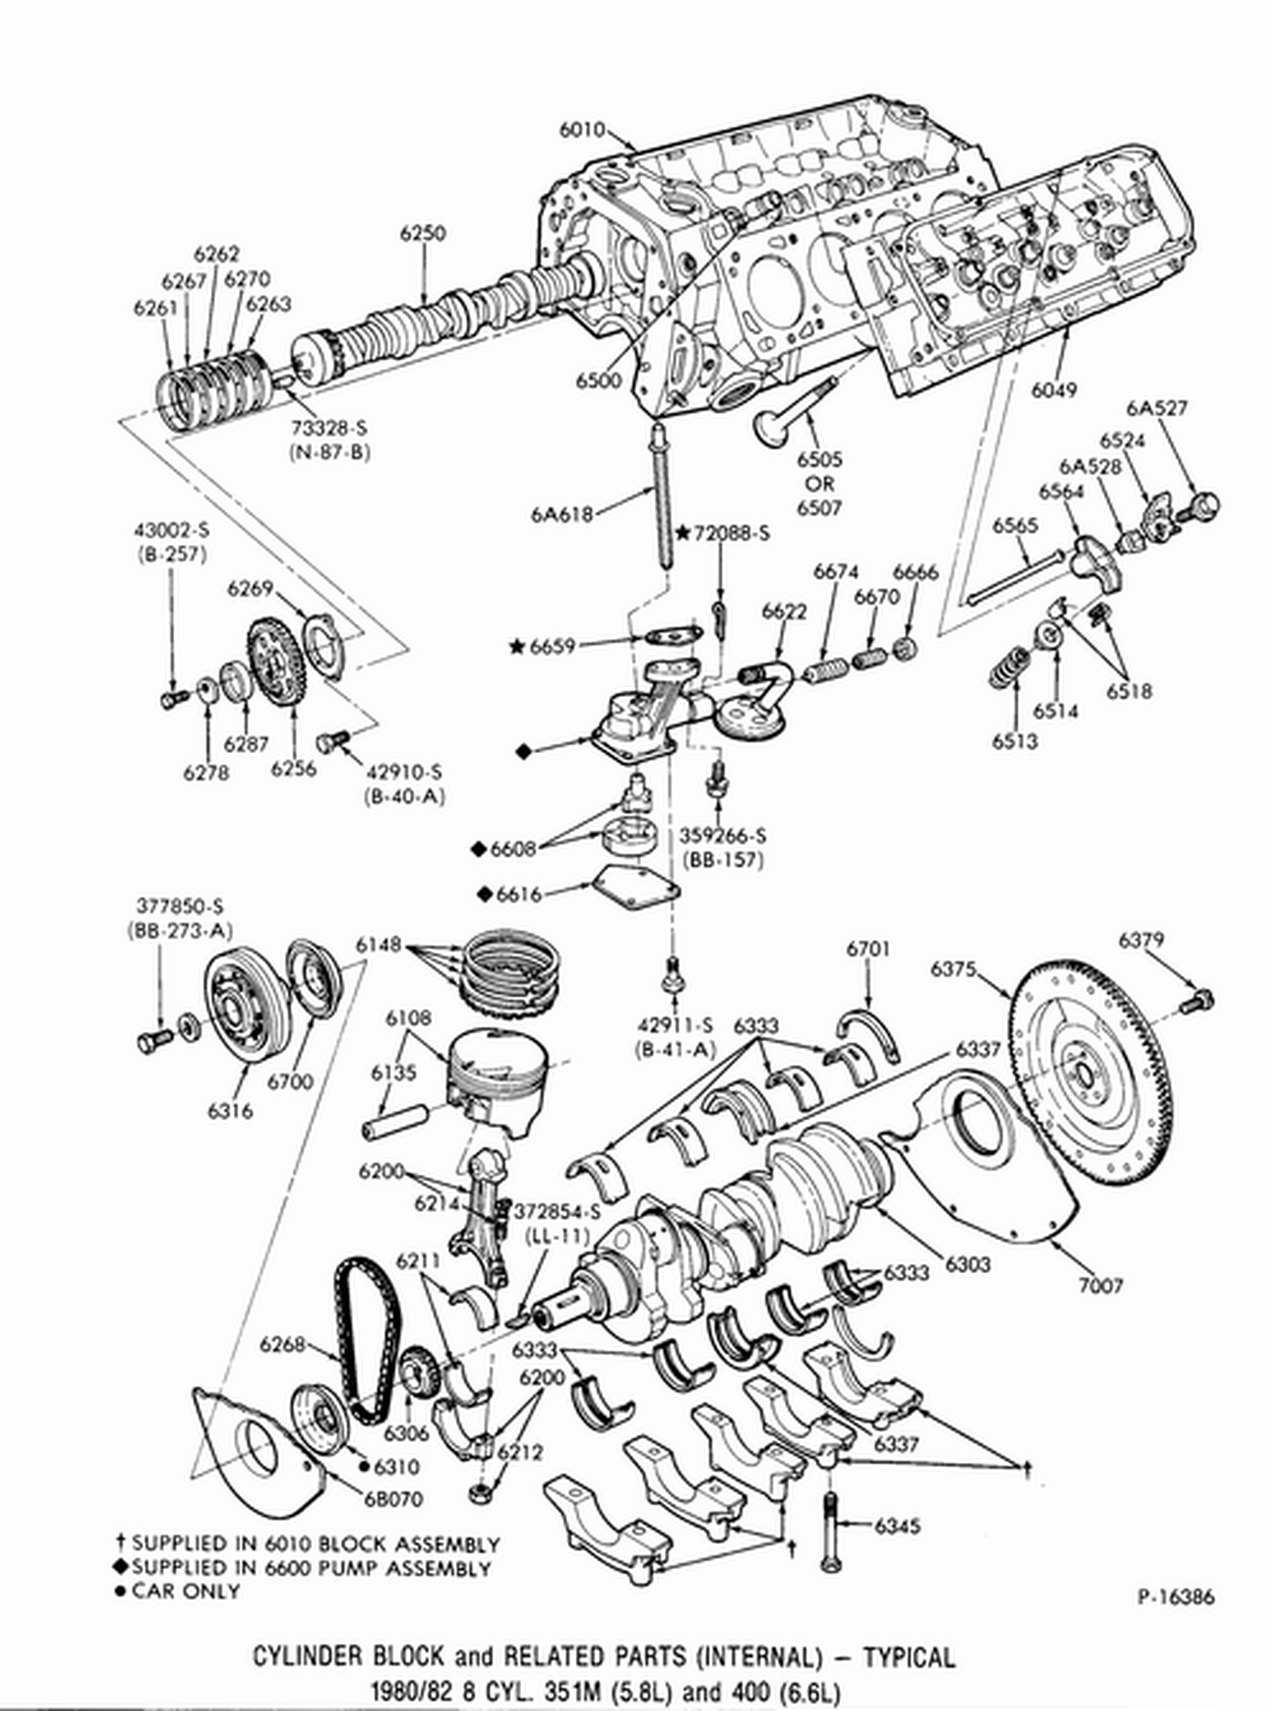 351c engine diagram